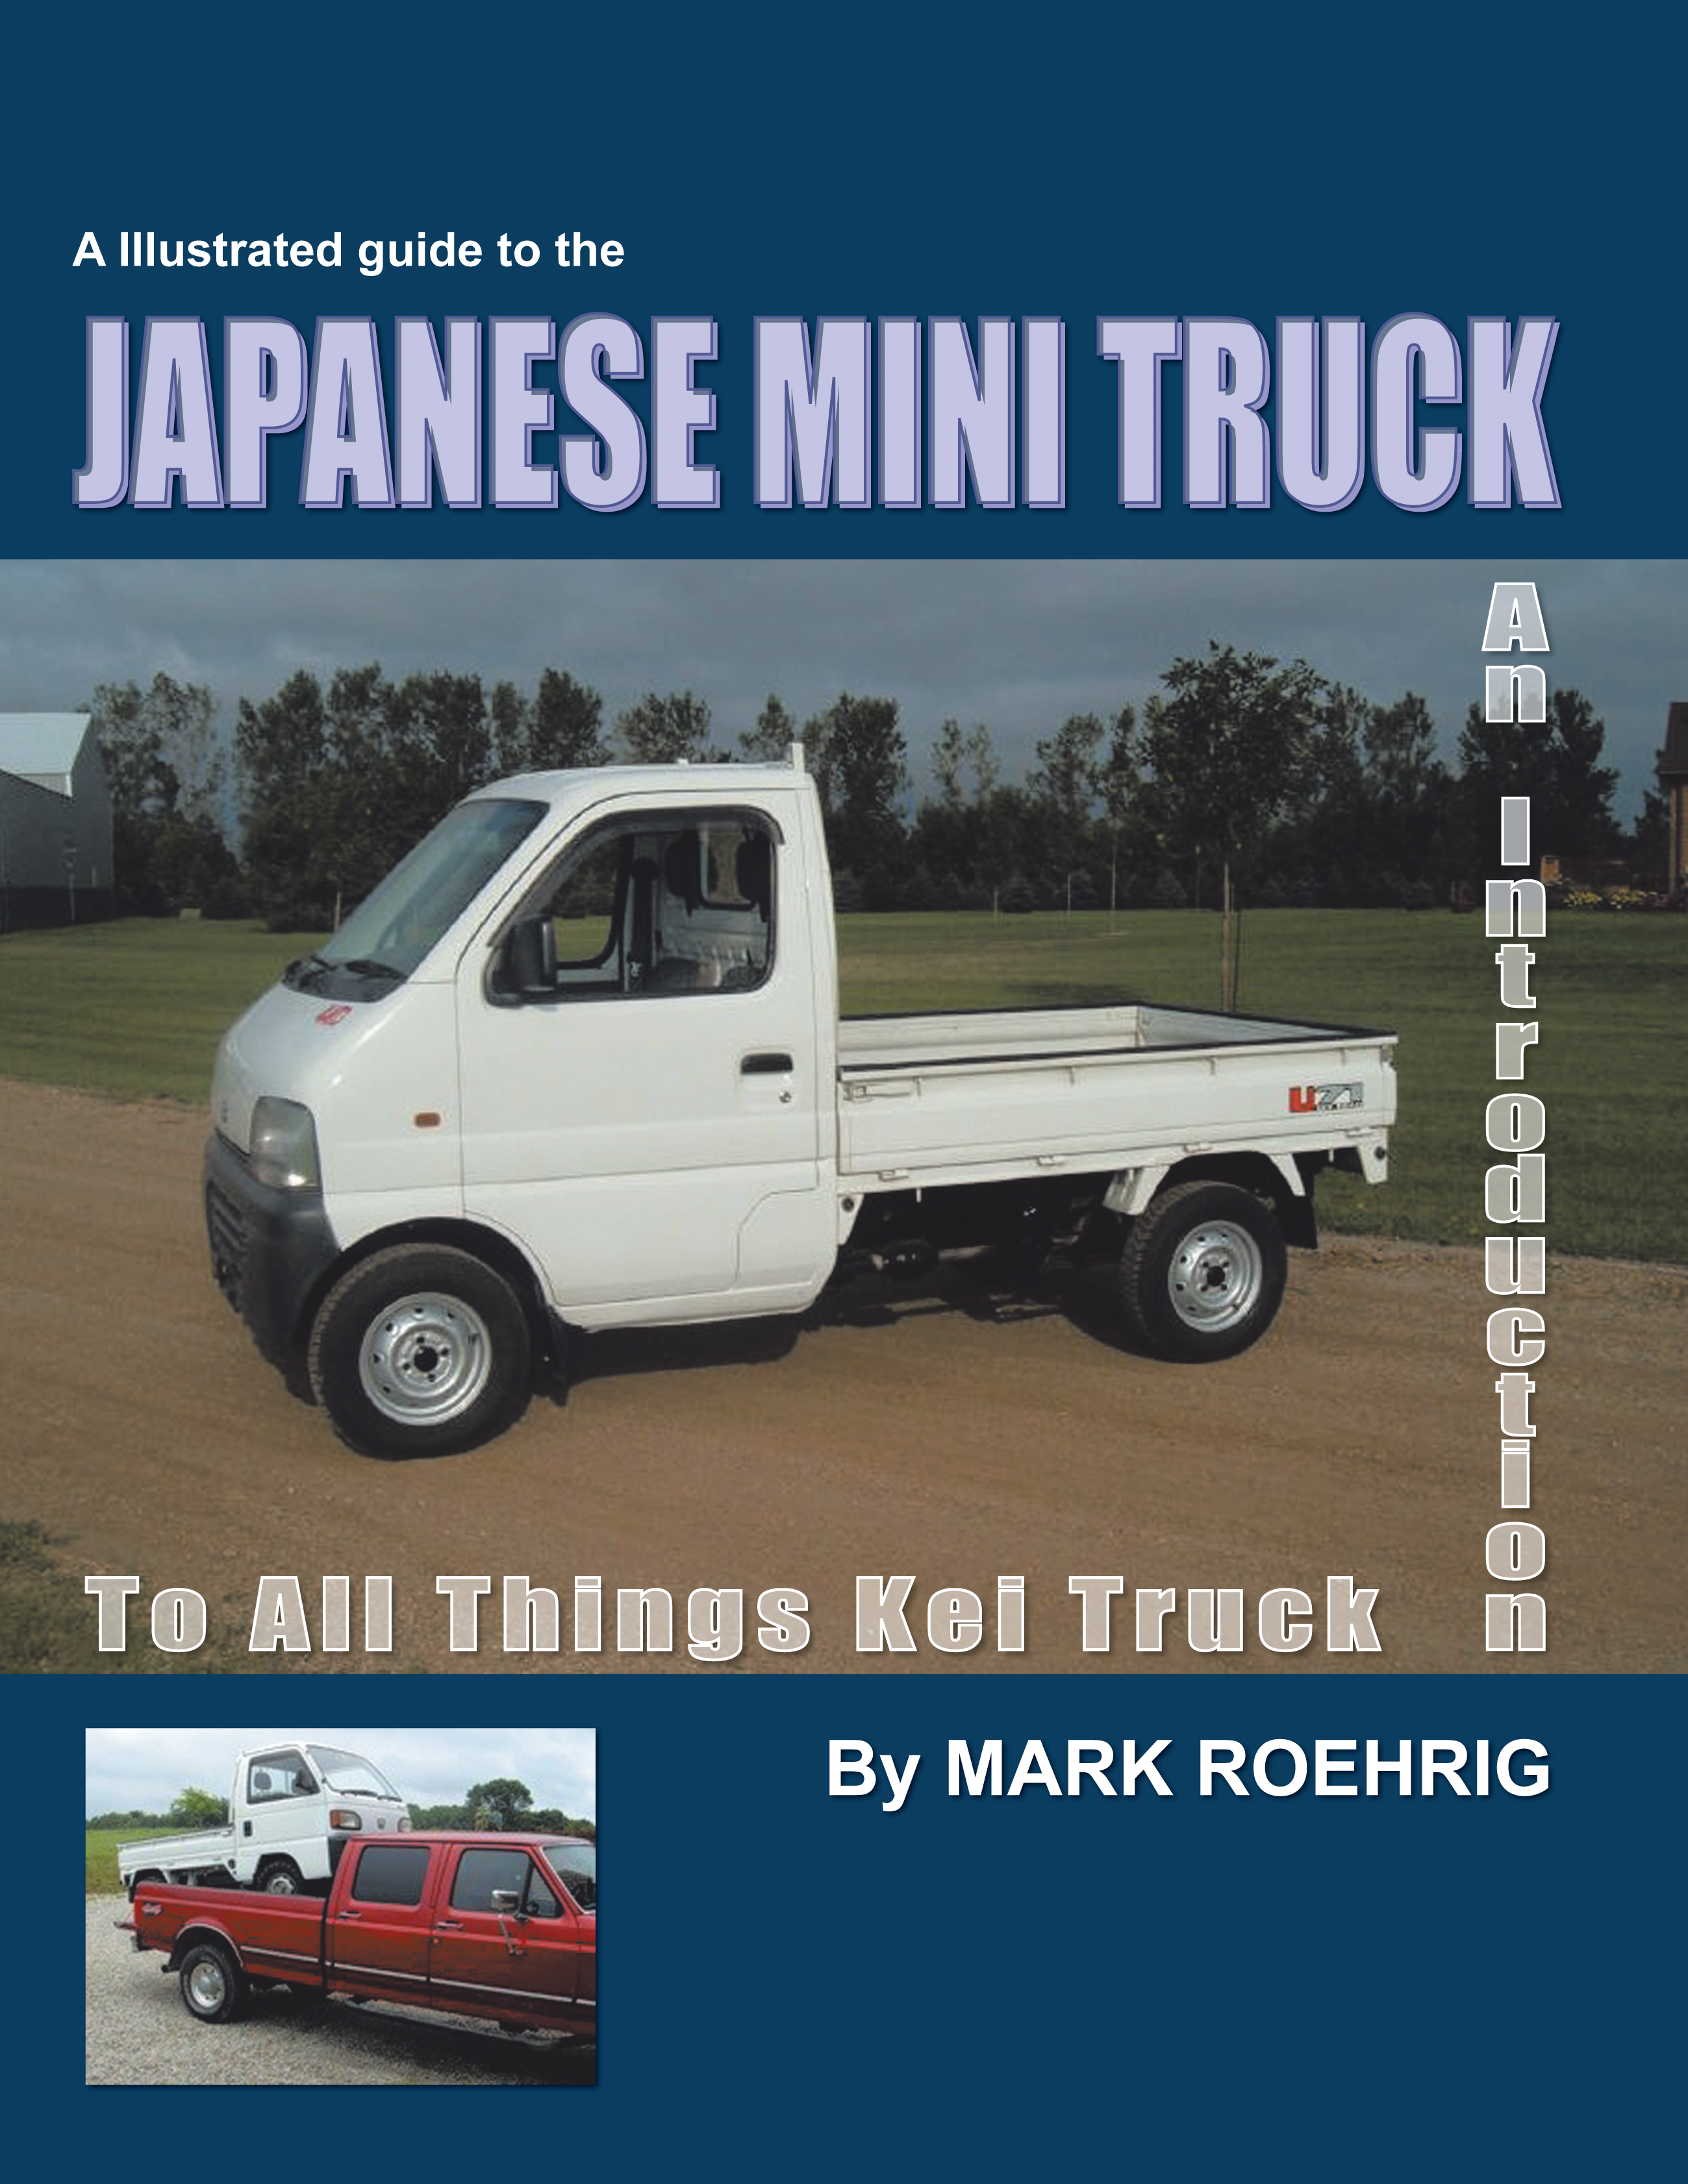 JAPANESE MINI TRUCK By: Mark Roehrig